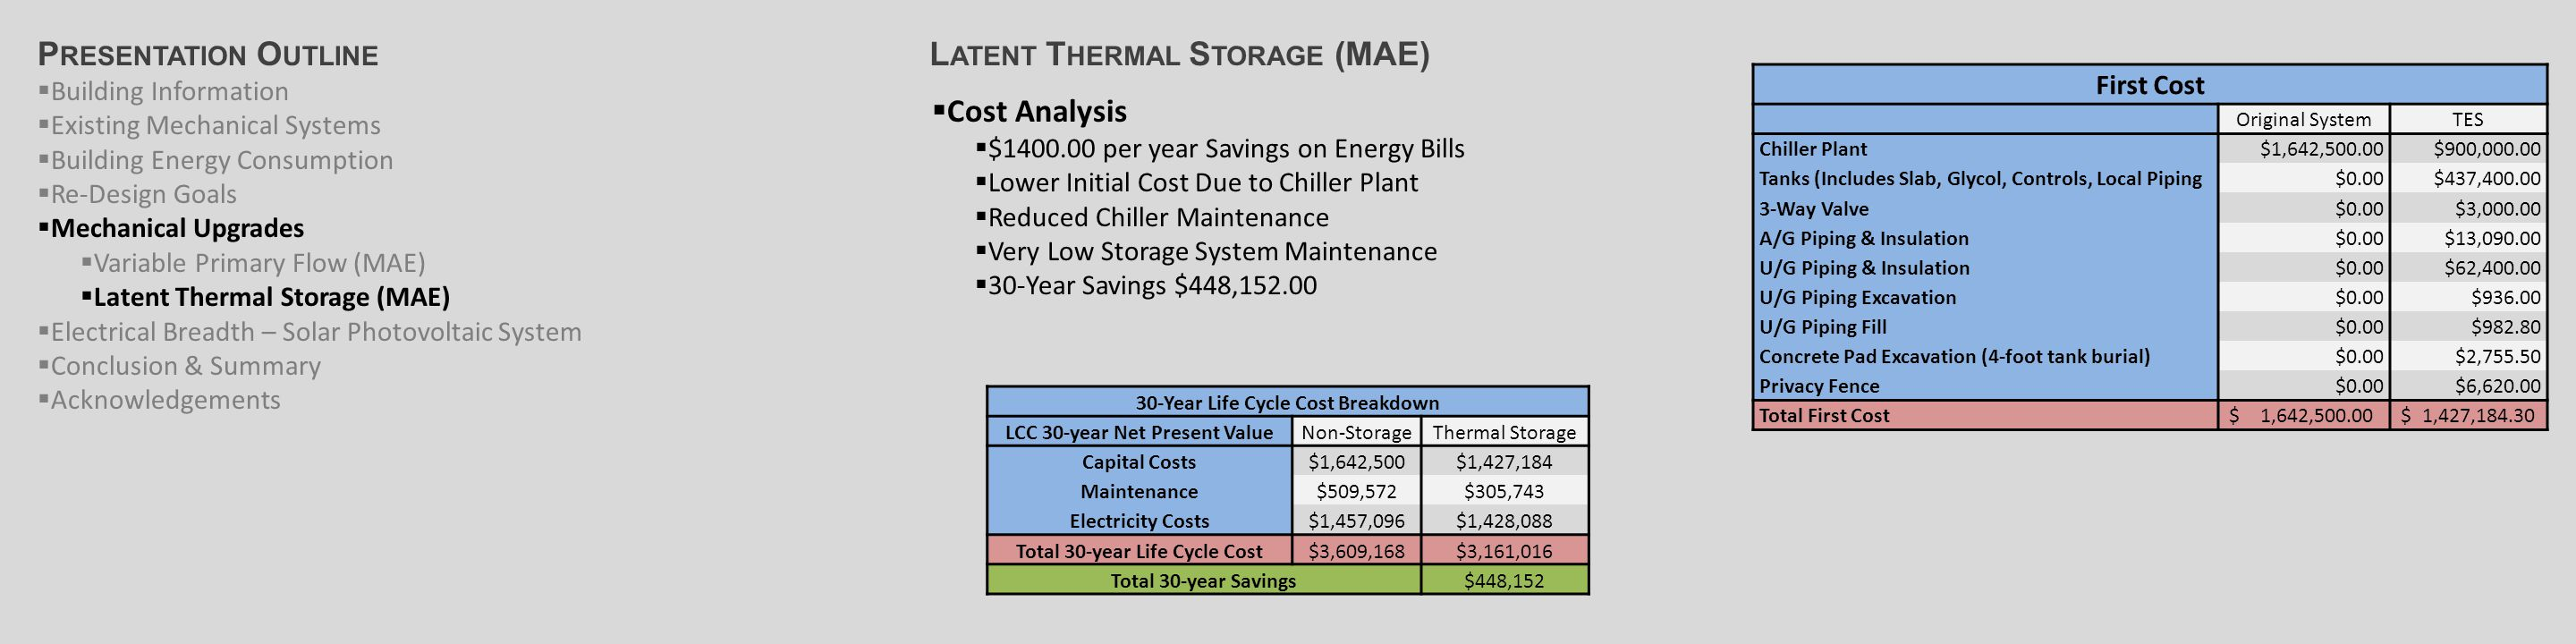 L ATENT T HERMAL S TORAGE (MAE)  Cost Analysis  $1400.00 per year Savings on Energy Bills  Lower Initial Cost Due to Chiller Plant  Reduced Chiller Maintenance  Very Low Storage System Maintenance  30-Year Savings $448,152.00 First Cost Original SystemTES Chiller Plant$1,642,500.00$900,000.00 Tanks (Includes Slab, Glycol, Controls, Local Piping$0.00$437,400.00 3-Way Valve$0.00$3,000.00 A/G Piping & Insulation$0.00$13,090.00 U/G Piping & Insulation$0.00$62,400.00 U/G Piping Excavation$0.00$936.00 U/G Piping Fill$0.00$982.80 Concrete Pad Excavation (4-foot tank burial)$0.00$2,755.50 Privacy Fence$0.00$6,620.00 Total First Cost $ 1,642,500.00 $ 1,427,184.30 30-Year Life Cycle Cost Breakdown LCC 30-year Net Present ValueNon-StorageThermal Storage Capital Costs$1,642,500$1,427,184 Maintenance$509,572$305,743 Electricity Costs$1,457,096$1,428,088 Total 30-year Life Cycle Cost$3,609,168$3,161,016 Total 30-year Savings$448,152 P RESENTATION O UTLINE  Building Information  Existing Mechanical Systems  Building Energy Consumption  Re-Design Goals  Mechanical Upgrades  Variable Primary Flow (MAE)  Latent Thermal Storage (MAE)  Electrical Breadth – Solar Photovoltaic System  Conclusion & Summary  Acknowledgements